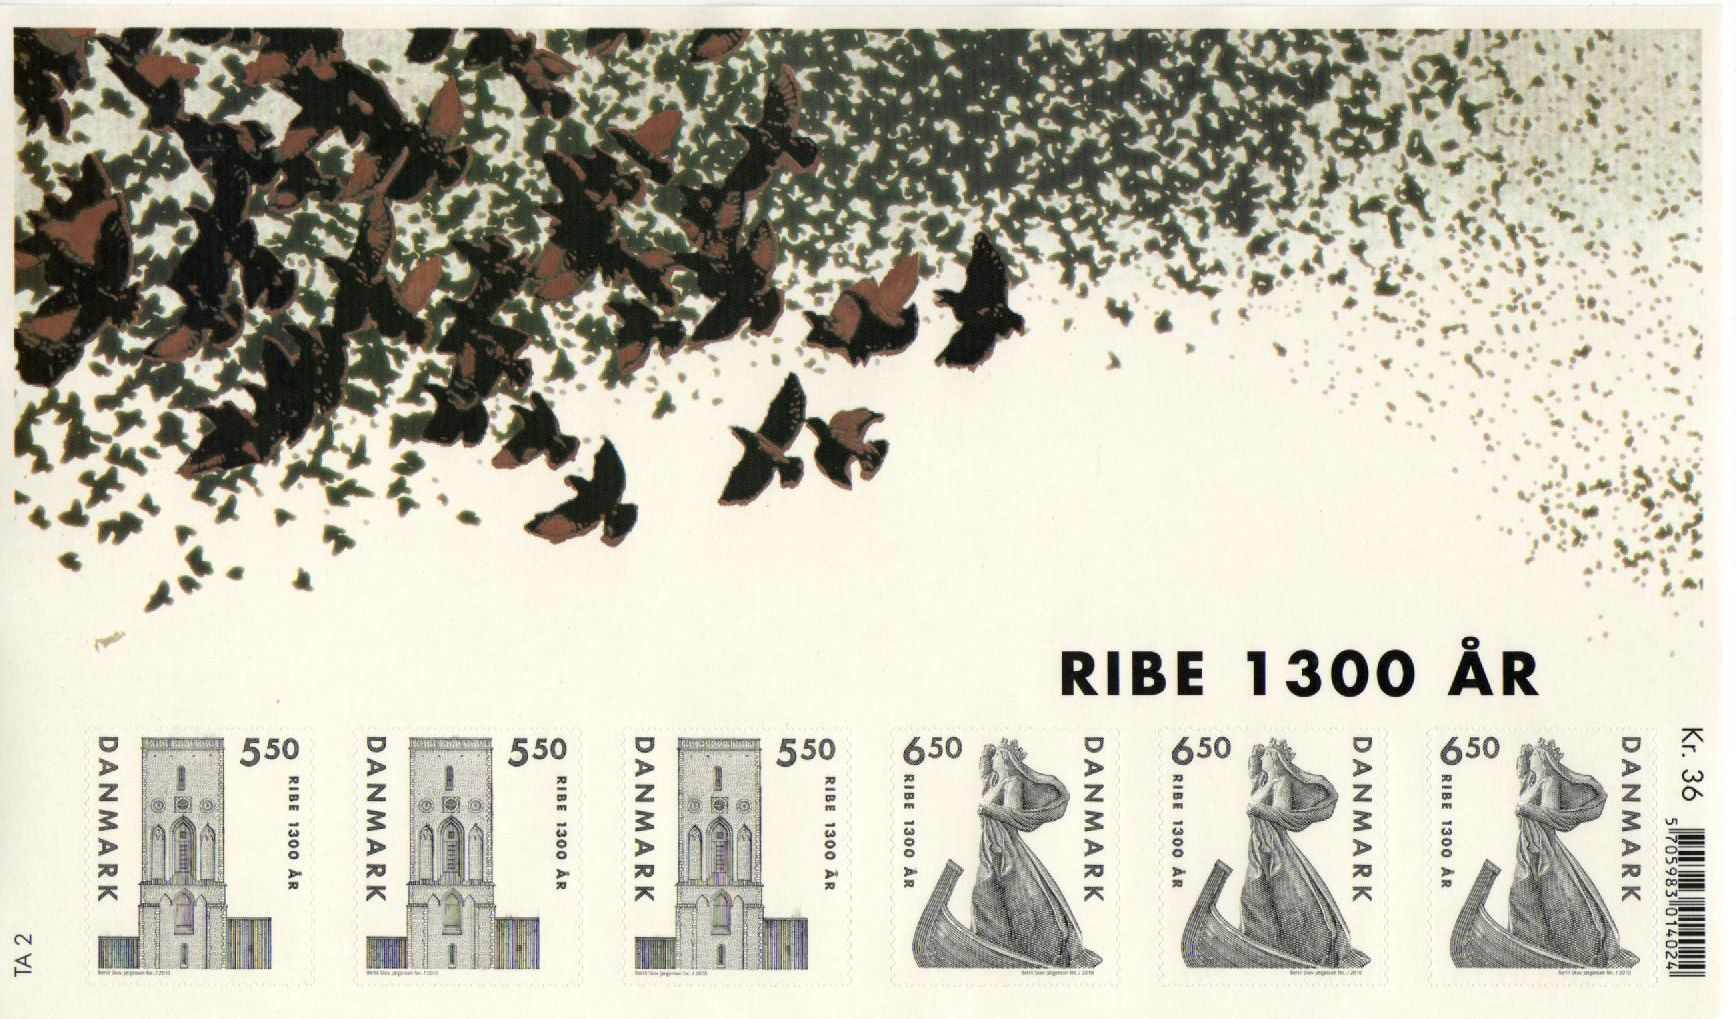 2010 City of Ribe 1300th Anniv. Souvenir Sheet